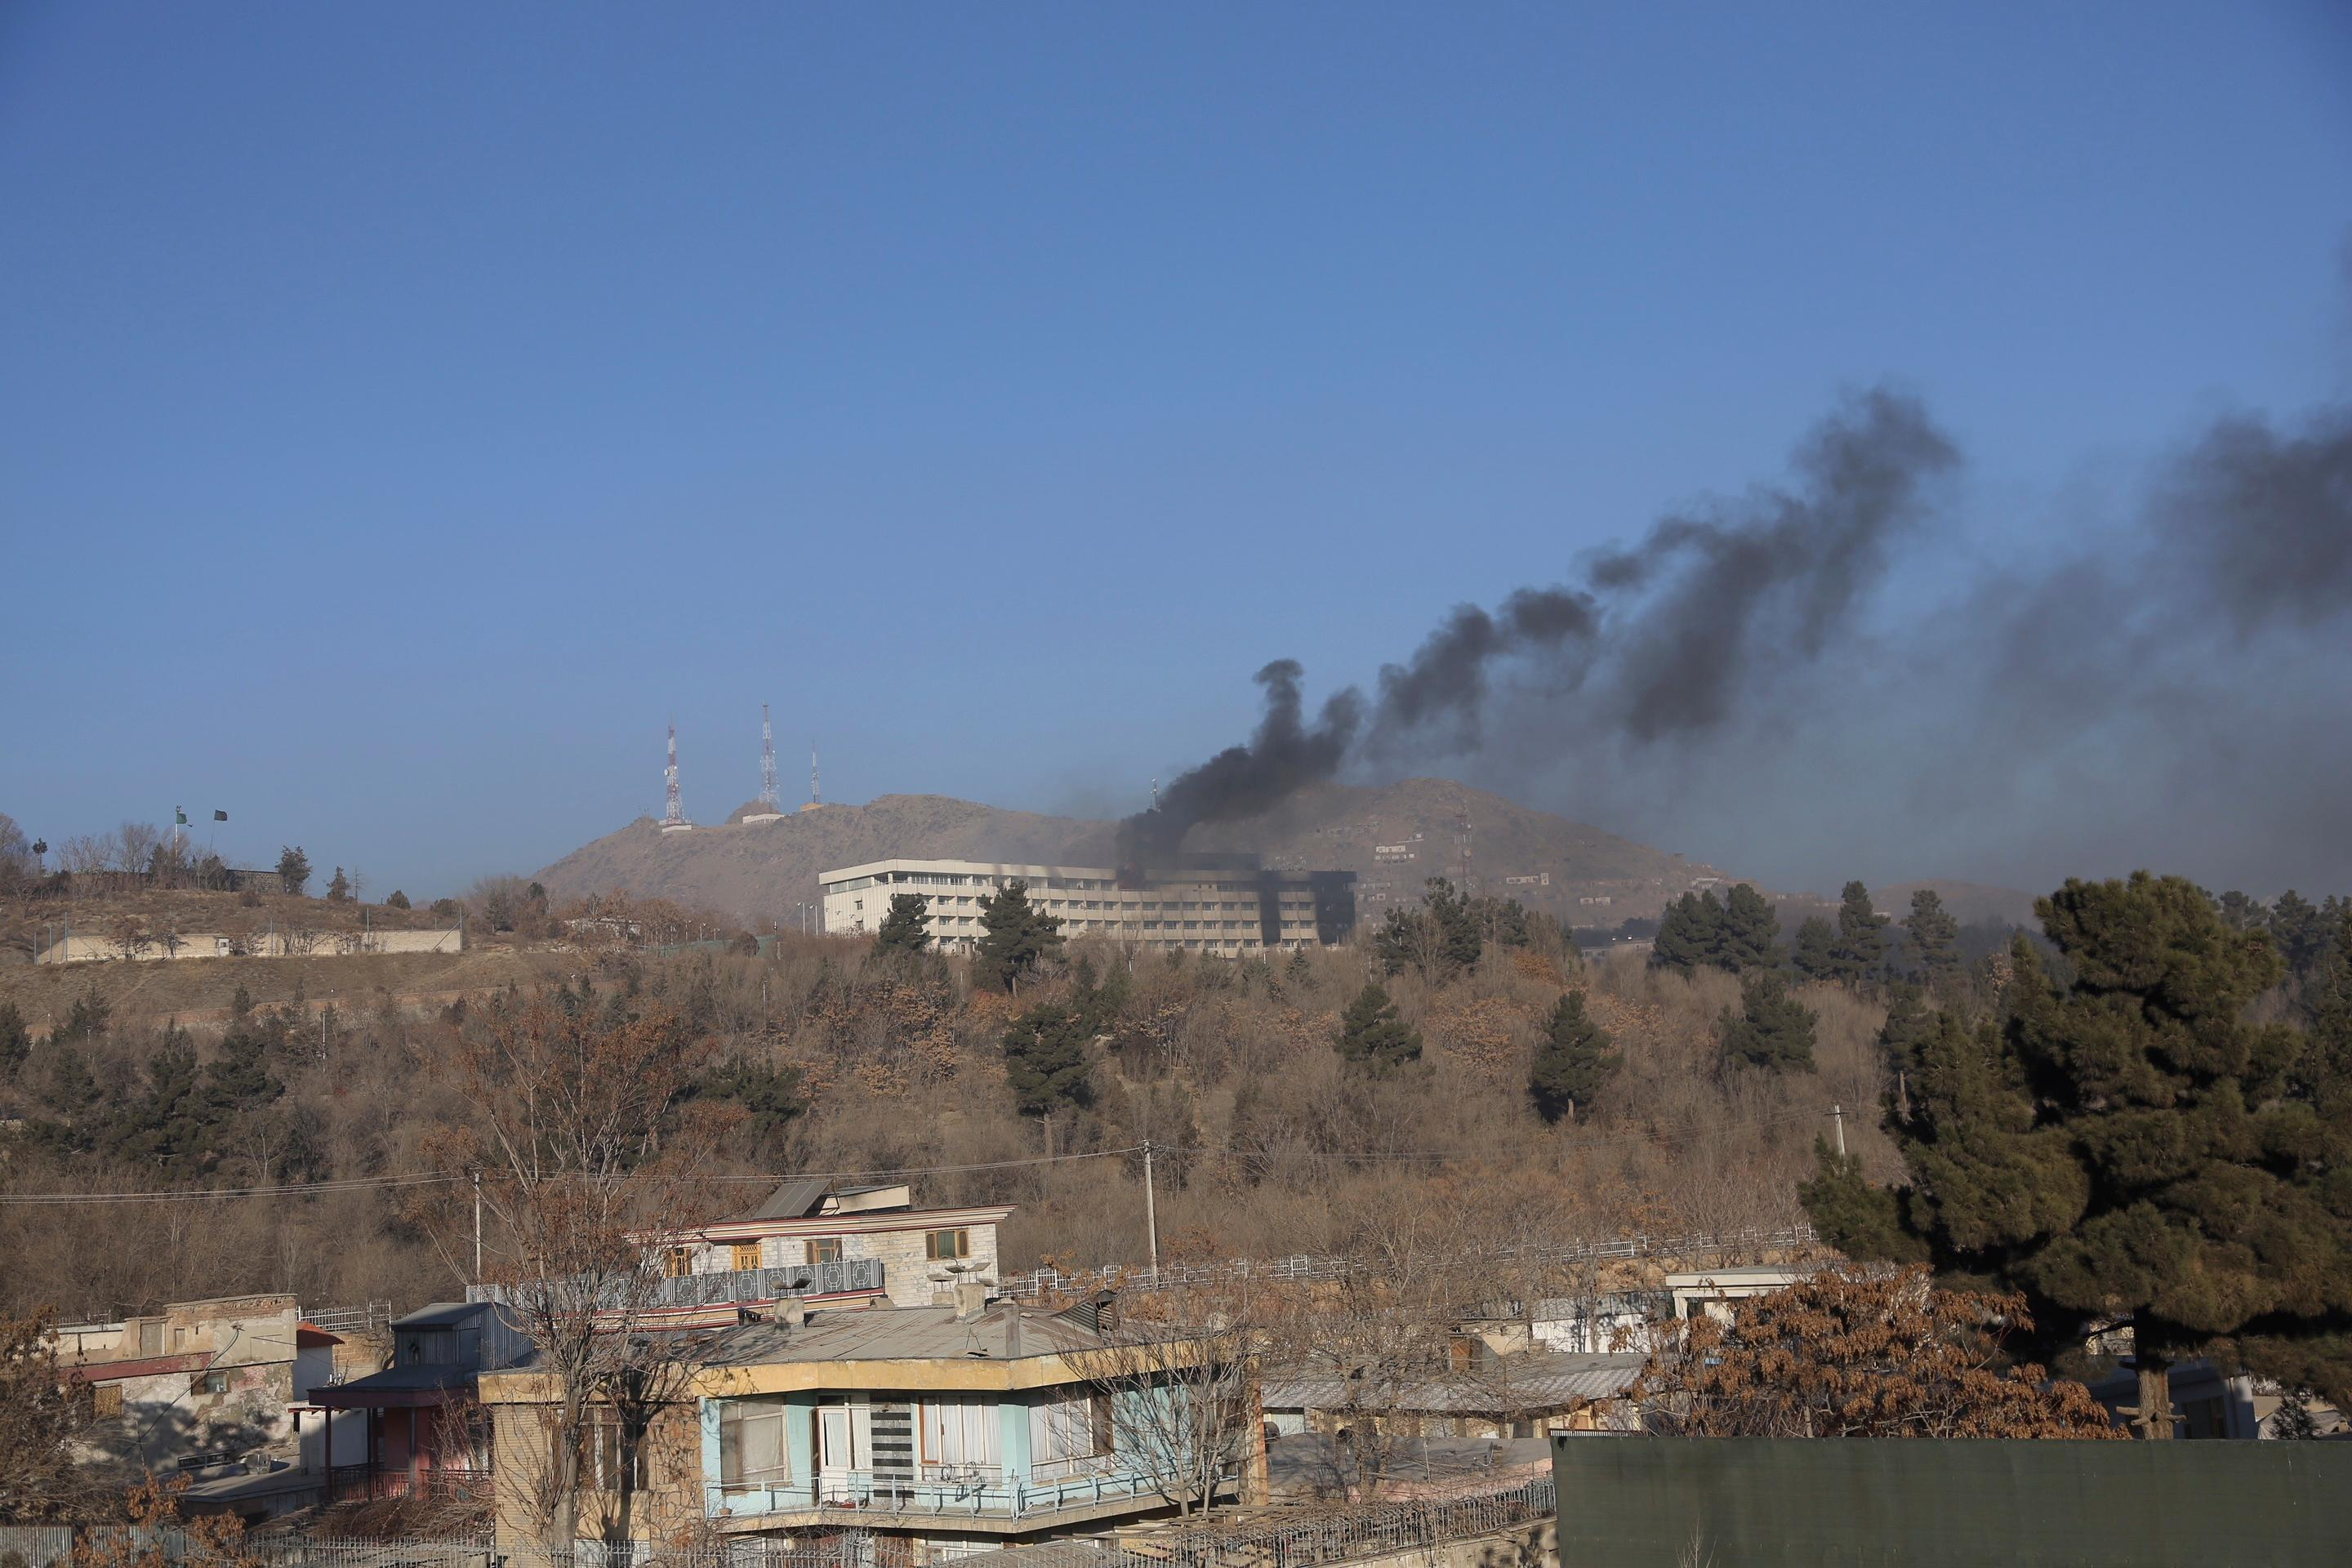 Black smoke rises from the Intercontinental Hotel after an attack in Kabul, Afghanistan, Sunday, Jan. 21, 2018. Gunmen stormed the hotel in the Afghan capital on Saturday evening, triggering a shootout with security forces, officials said. (AP Photo/Rahmat Gul)